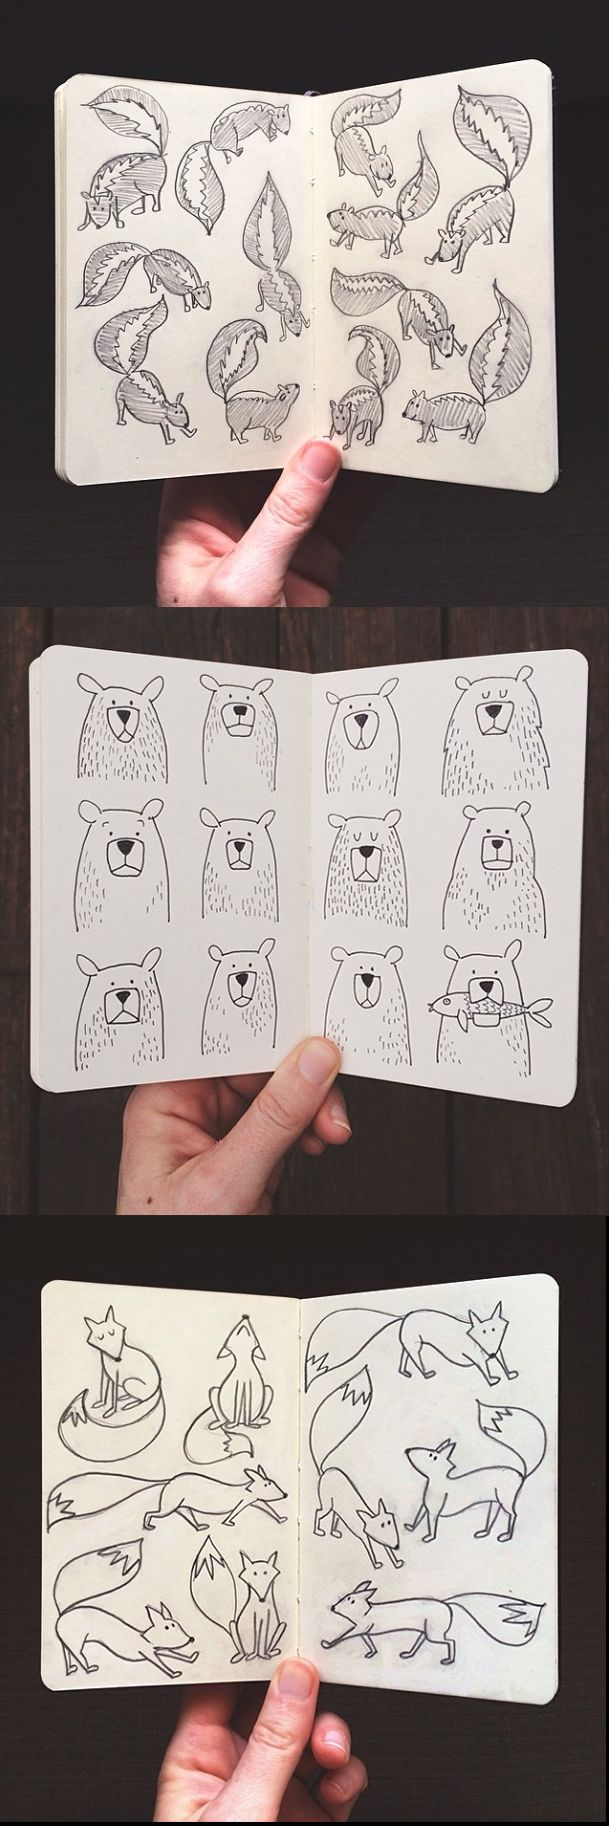 Illustration | doodle inspiration - skunks, bears, foxes